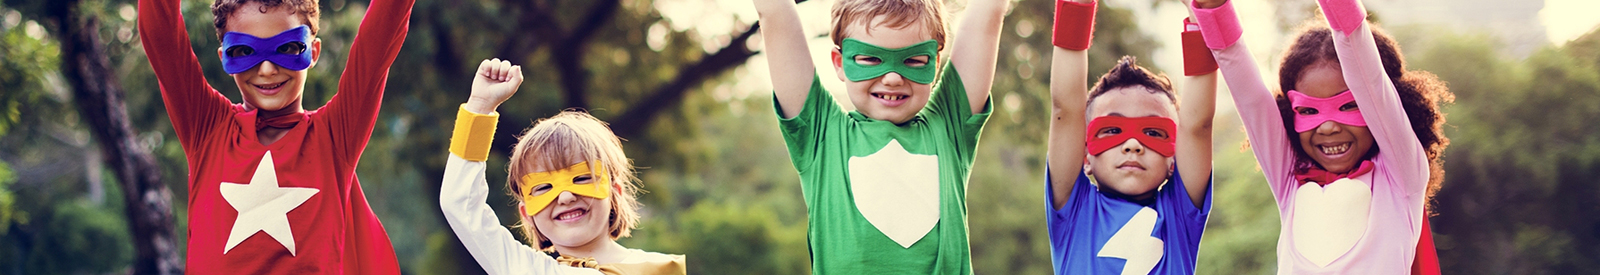 young kids dressed as superheros